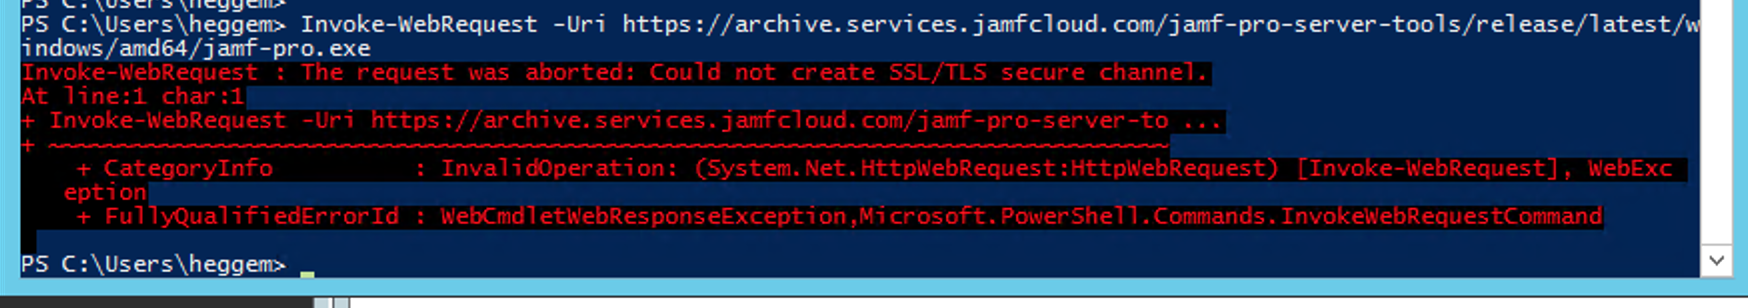 Using the Jamf Pro Server Tools Command-Line Interface